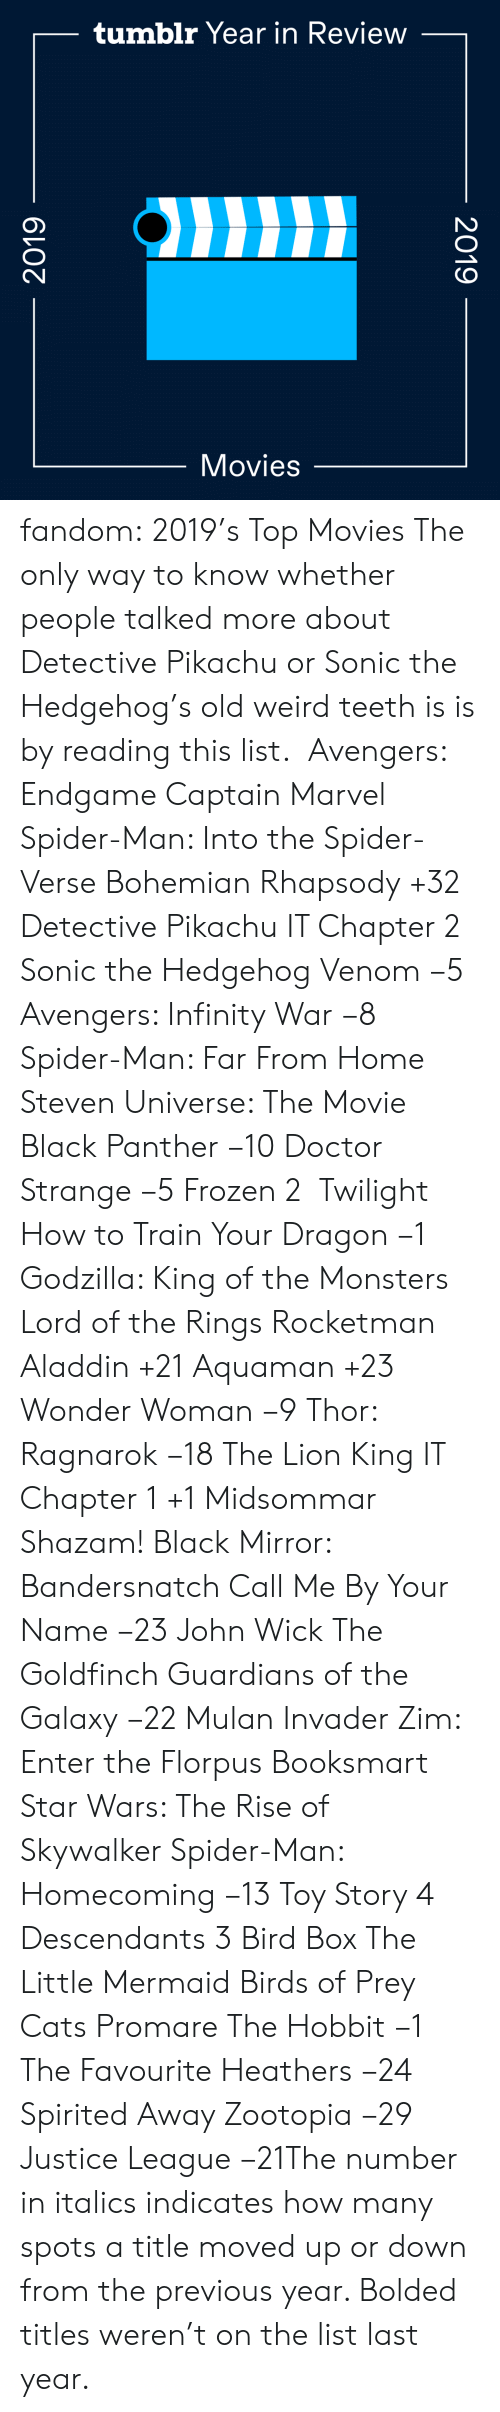 Spiderman: tumblr Year in Review  Movies  2019  2019 fandom:  2019's Top Movies  The only way to know whether people talked more about Detective Pikachu or Sonic the Hedgehog's old weird teeth is is by reading this list.   Avengers: Endgame  Captain Marvel  Spider-Man: Into the Spider-Verse  Bohemian Rhapsody +32  Detective Pikachu  IT Chapter 2  Sonic the Hedgehog  Venom −5  Avengers: Infinity War −8  Spider-Man: Far From Home  Steven Universe: The Movie  Black Panther −10  Doctor Strange −5  Frozen 2   Twilight  How to Train Your Dragon −1  Godzilla: King of the Monsters  Lord of the Rings  Rocketman  Aladdin +21  Aquaman +23  Wonder Woman −9  Thor: Ragnarok −18  The Lion King  IT Chapter 1 +1  Midsommar  Shazam!  Black Mirror: Bandersnatch  Call Me By Your Name −23  John Wick  The Goldfinch  Guardians of the Galaxy −22  Mulan  Invader Zim: Enter the Florpus  Booksmart  Star Wars: The Rise of Skywalker  Spider-Man: Homecoming −13  Toy Story 4  Descendants 3  Bird Box  The Little Mermaid  Birds of Prey  Cats  Promare  The Hobbit −1  The Favourite  Heathers −24  Spirited Away  Zootopia −29 Justice League −21The number in italics indicates how many spots a title moved up or down from the previous year. Bolded titles weren't on the list last year.